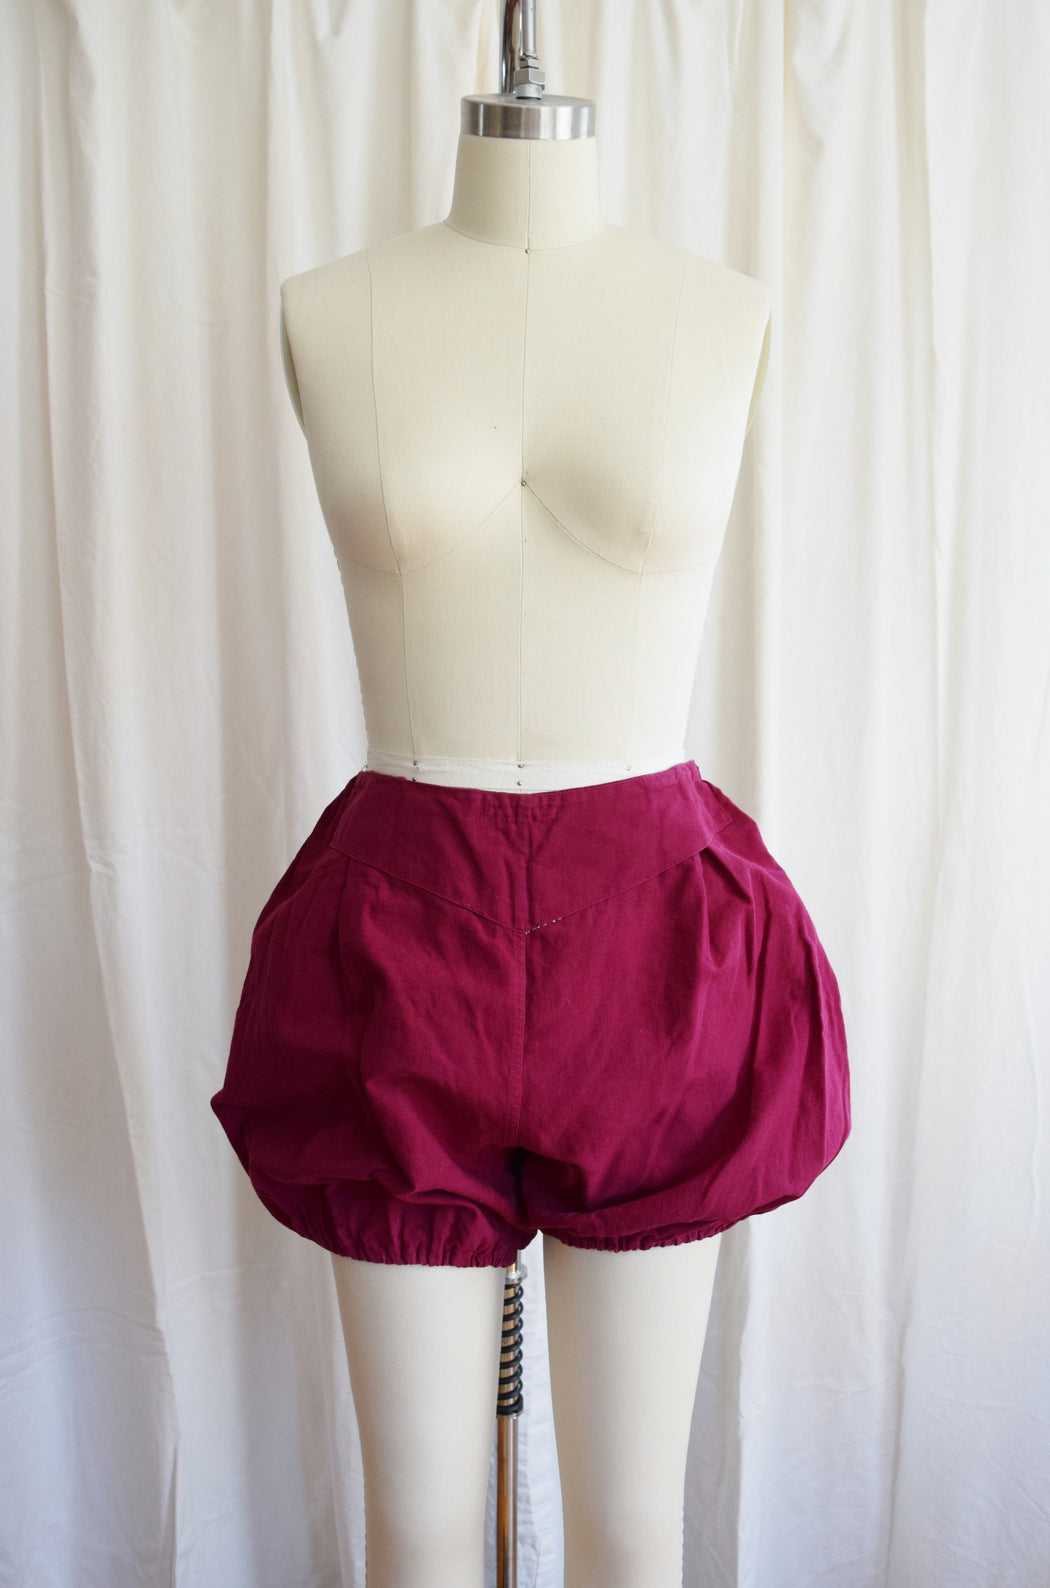 Mary's 1920s Athletic Shorts | Vintage Pantaloons